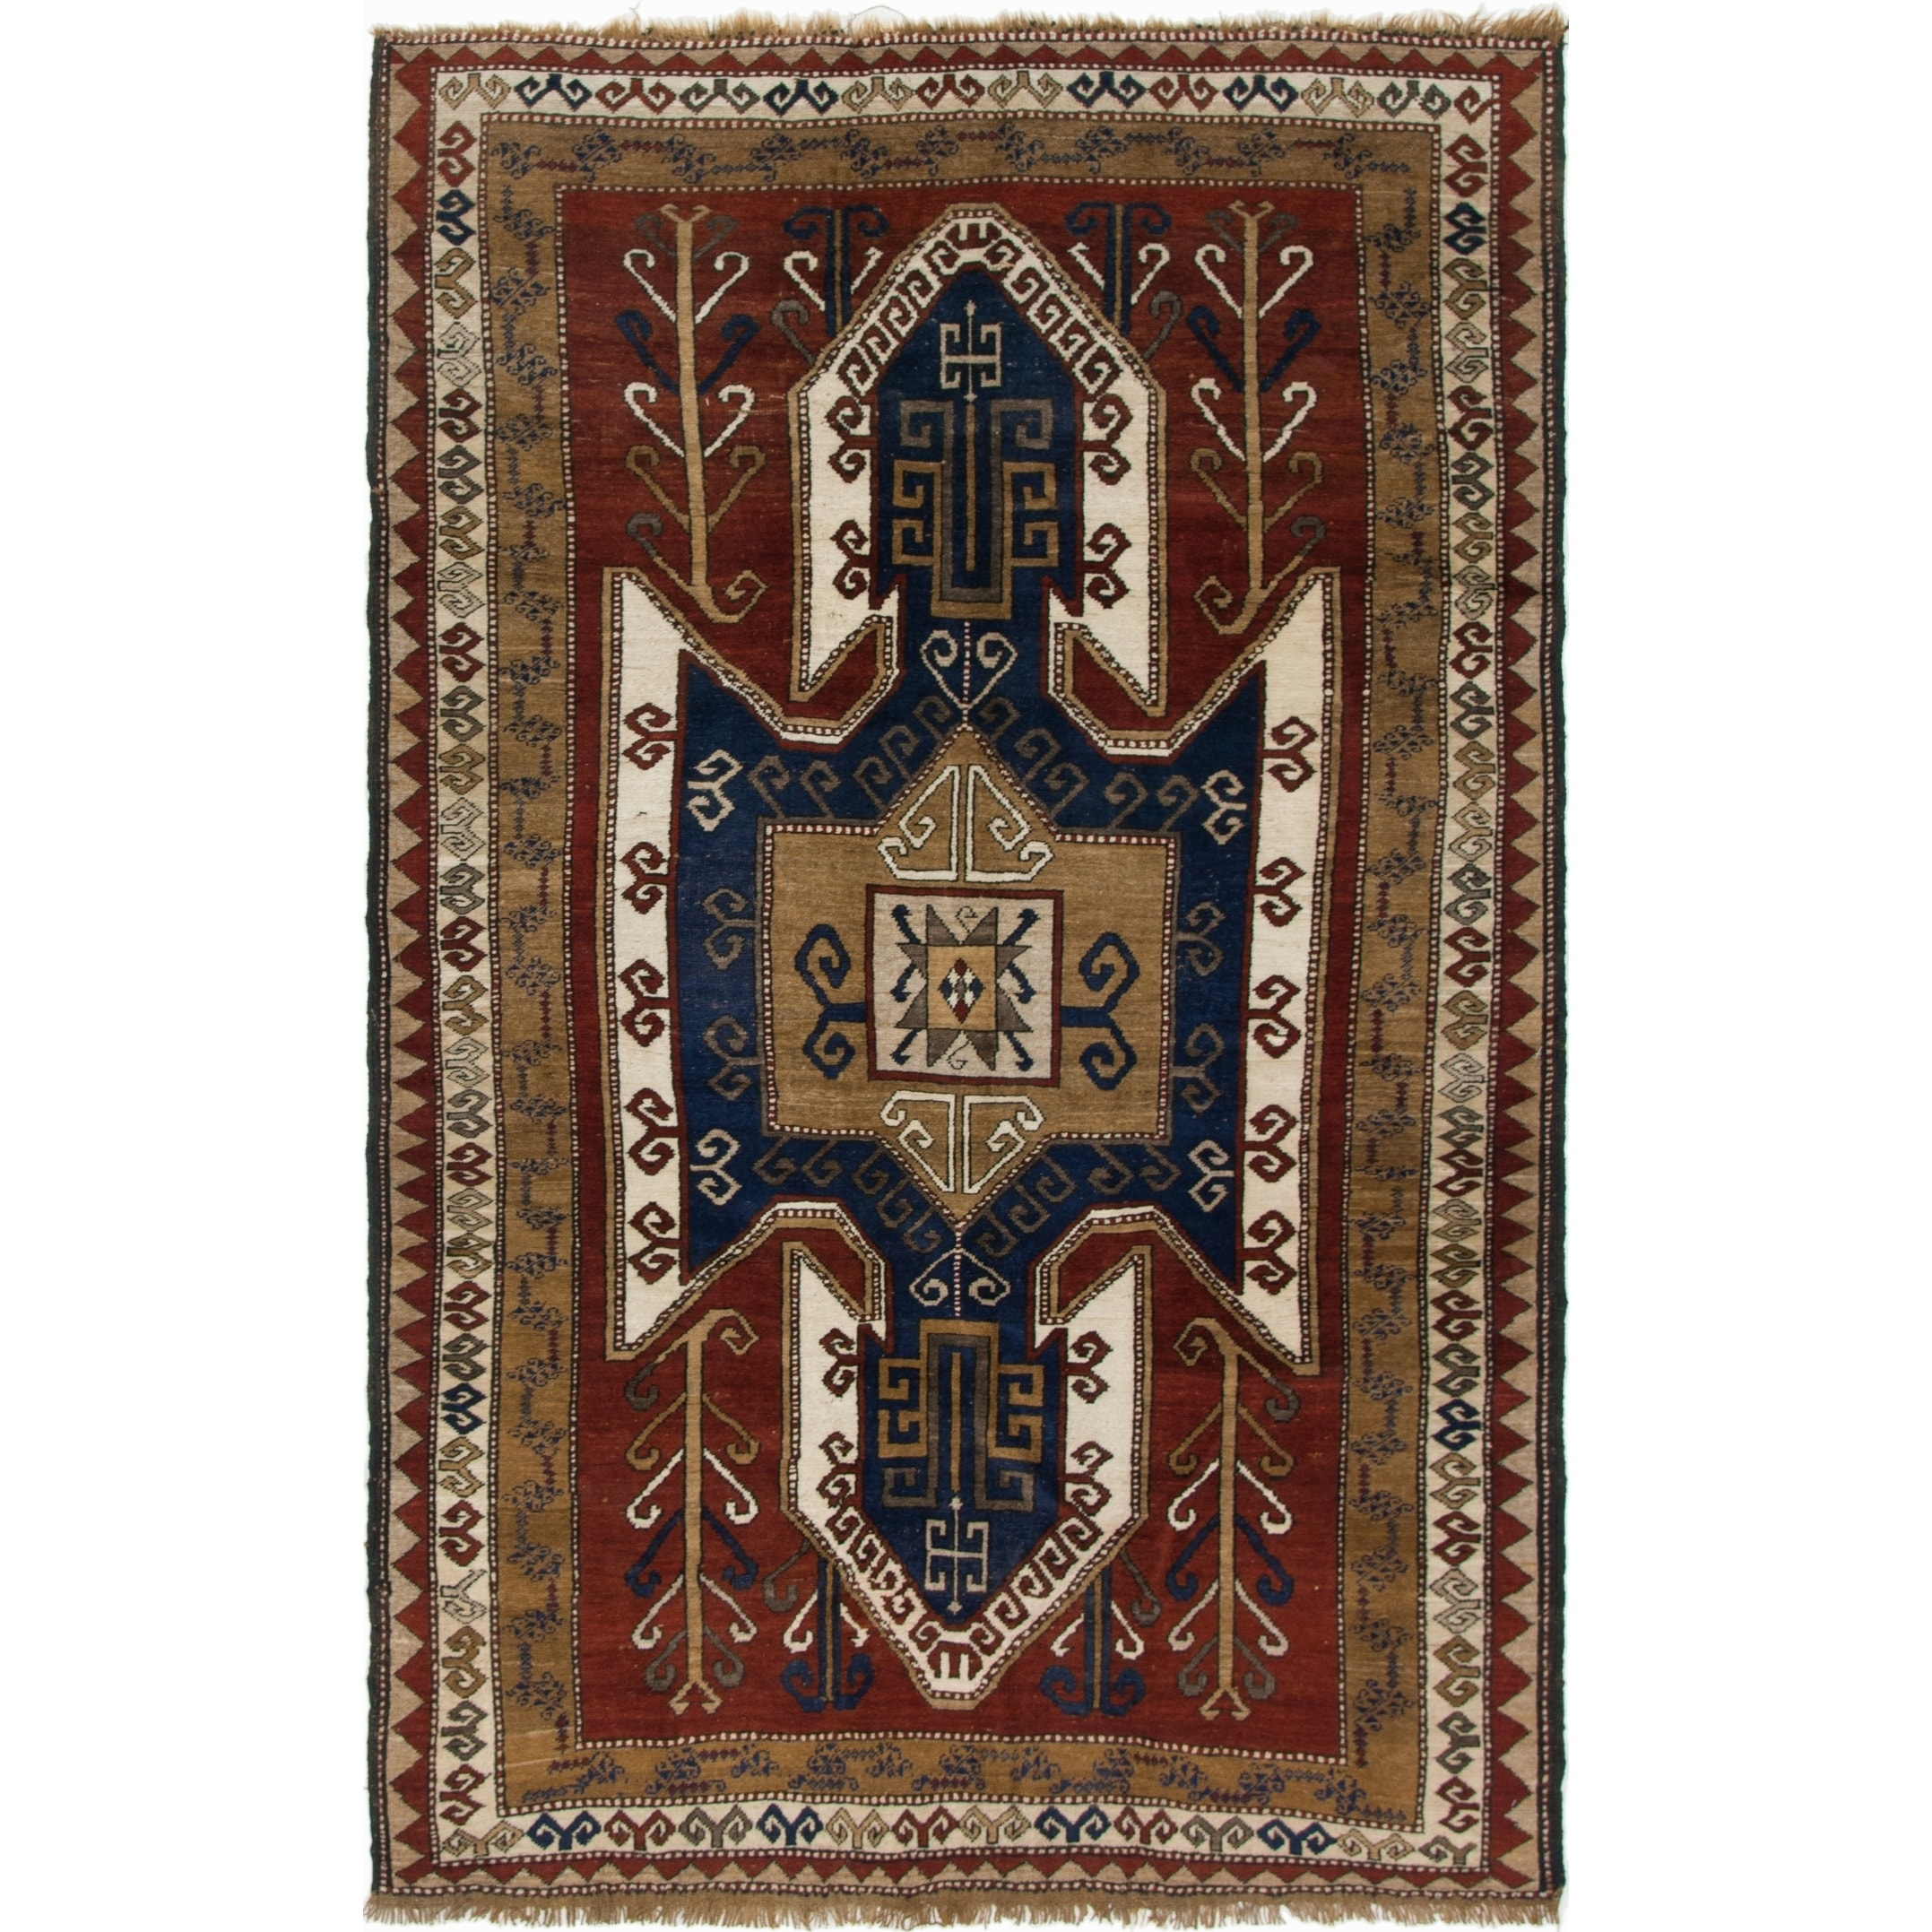 Hand Knotted Kars Semi Antique Wool Area Rug - 5' 1 x 8' 6 (Burgundy - 5' 1 x 8' 6)